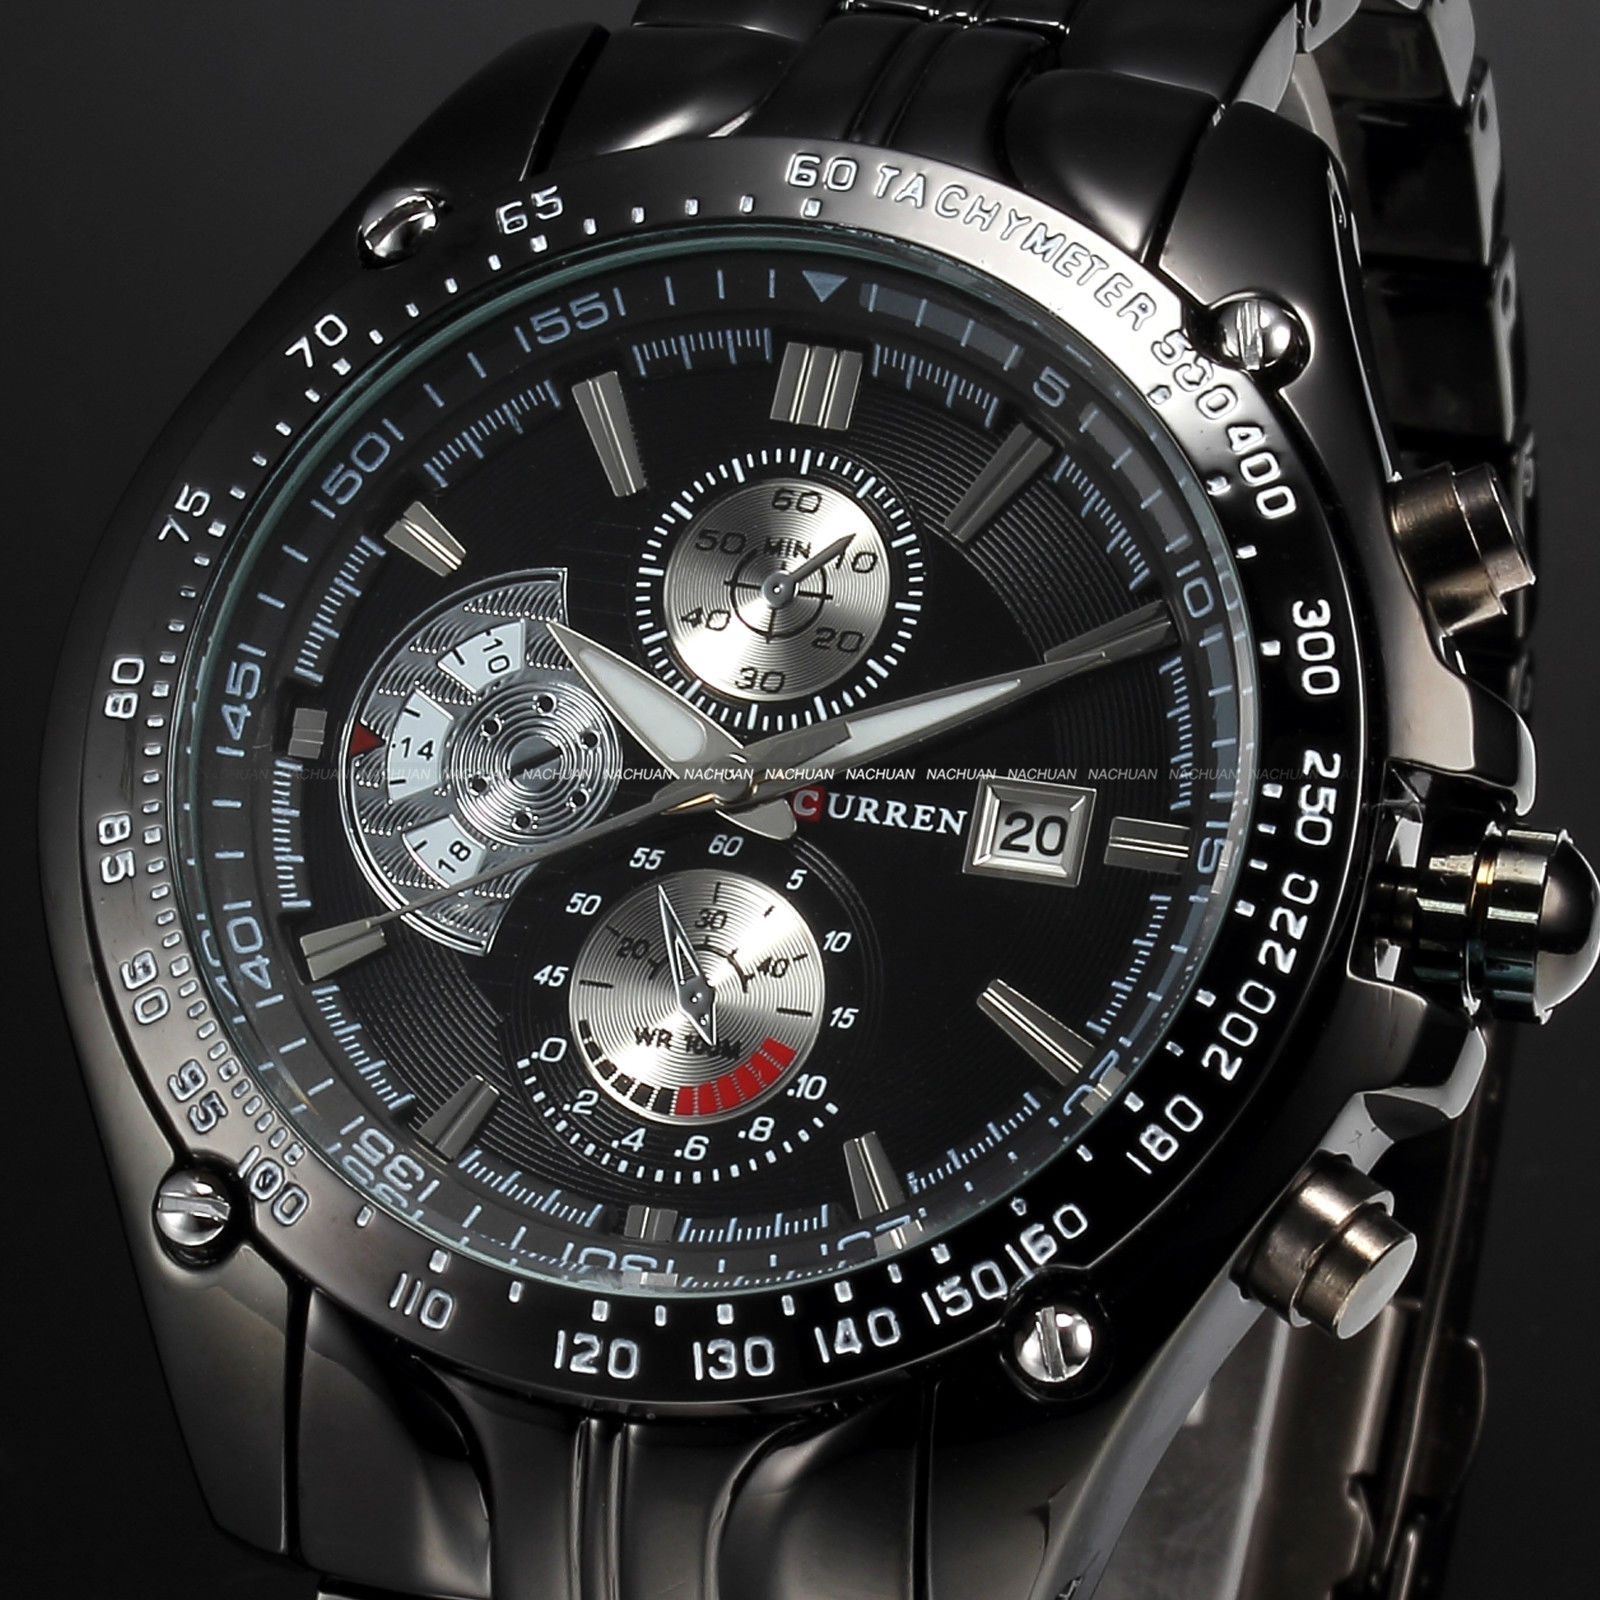 New-Luxury-Sport-Mens-Stainless-Steel-Date-Quartz-Analog-Black-Dial-Wrist-Watch